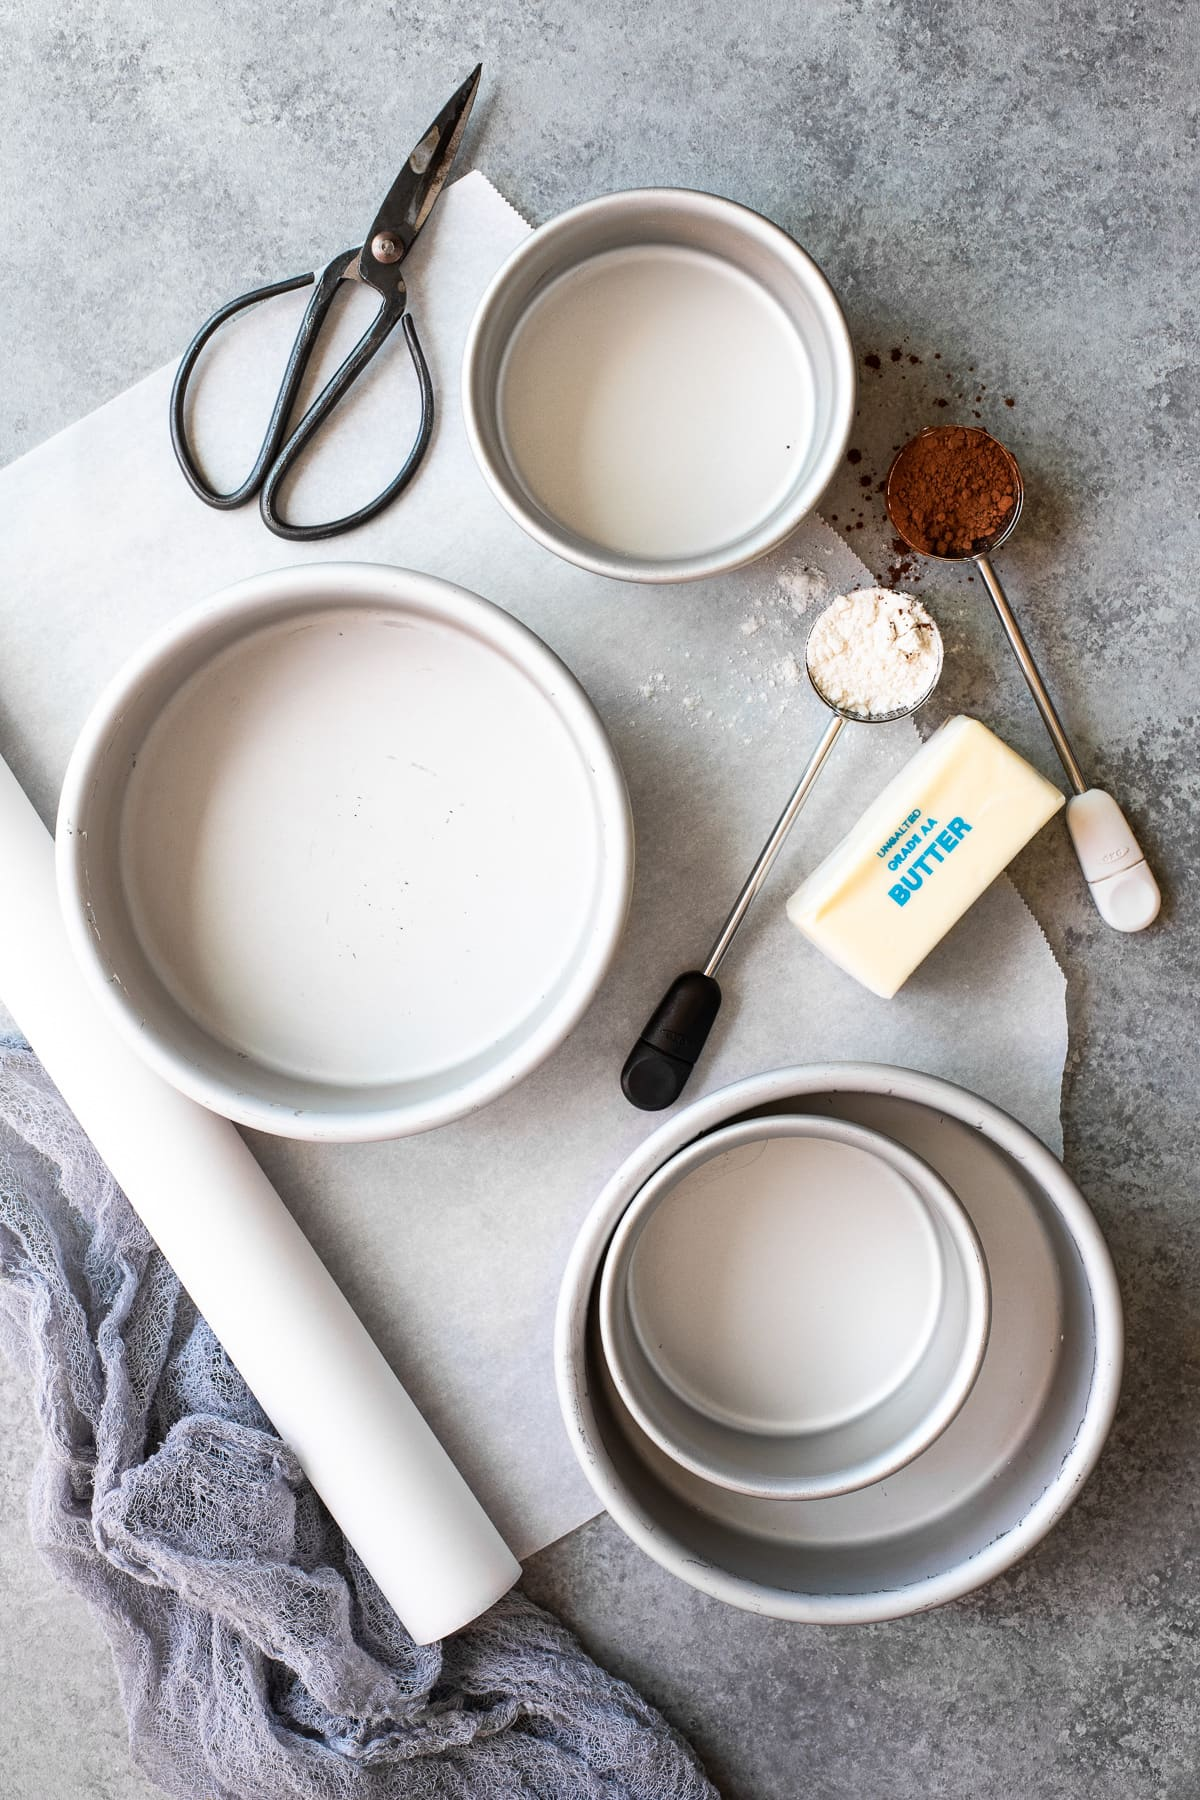 Overhead view of tools need to properly prepare and line a cake pan.